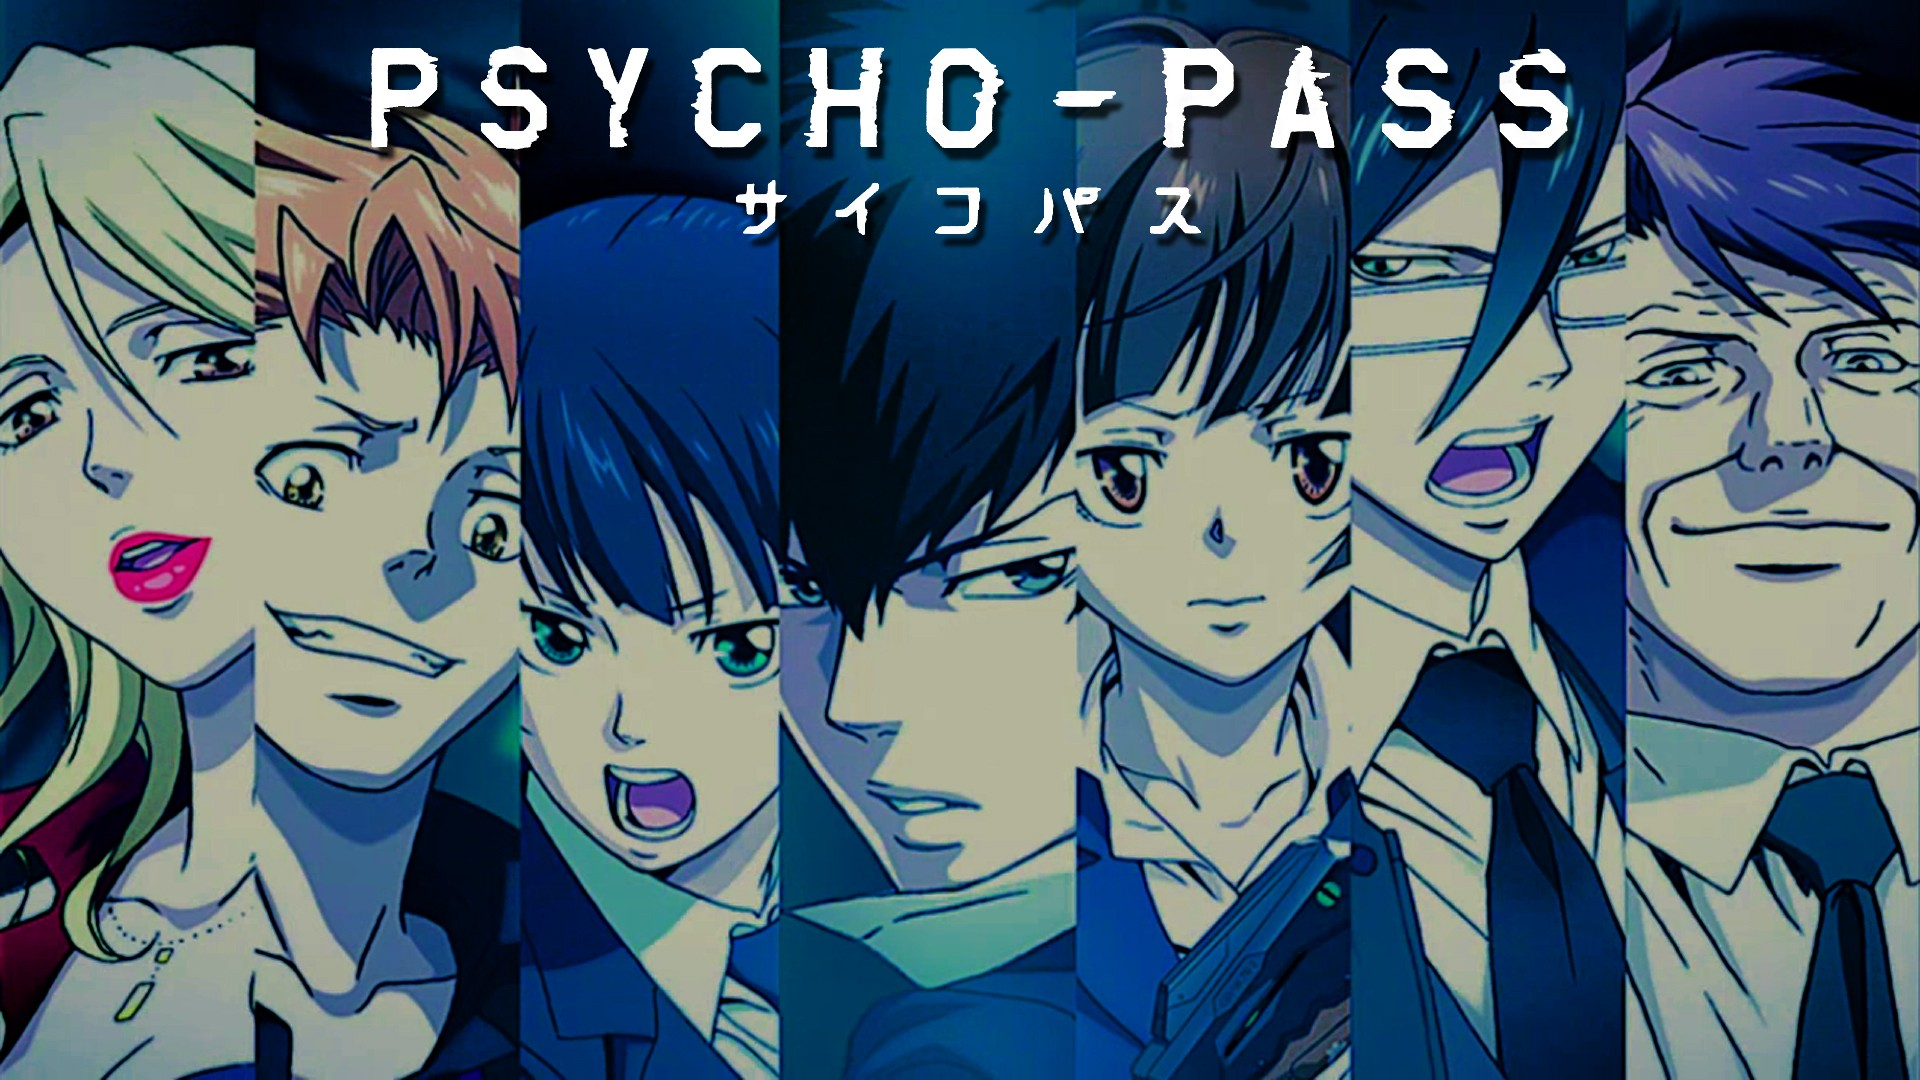 Psycho Pass Main Members Faces Hd Wallpaper Background Image